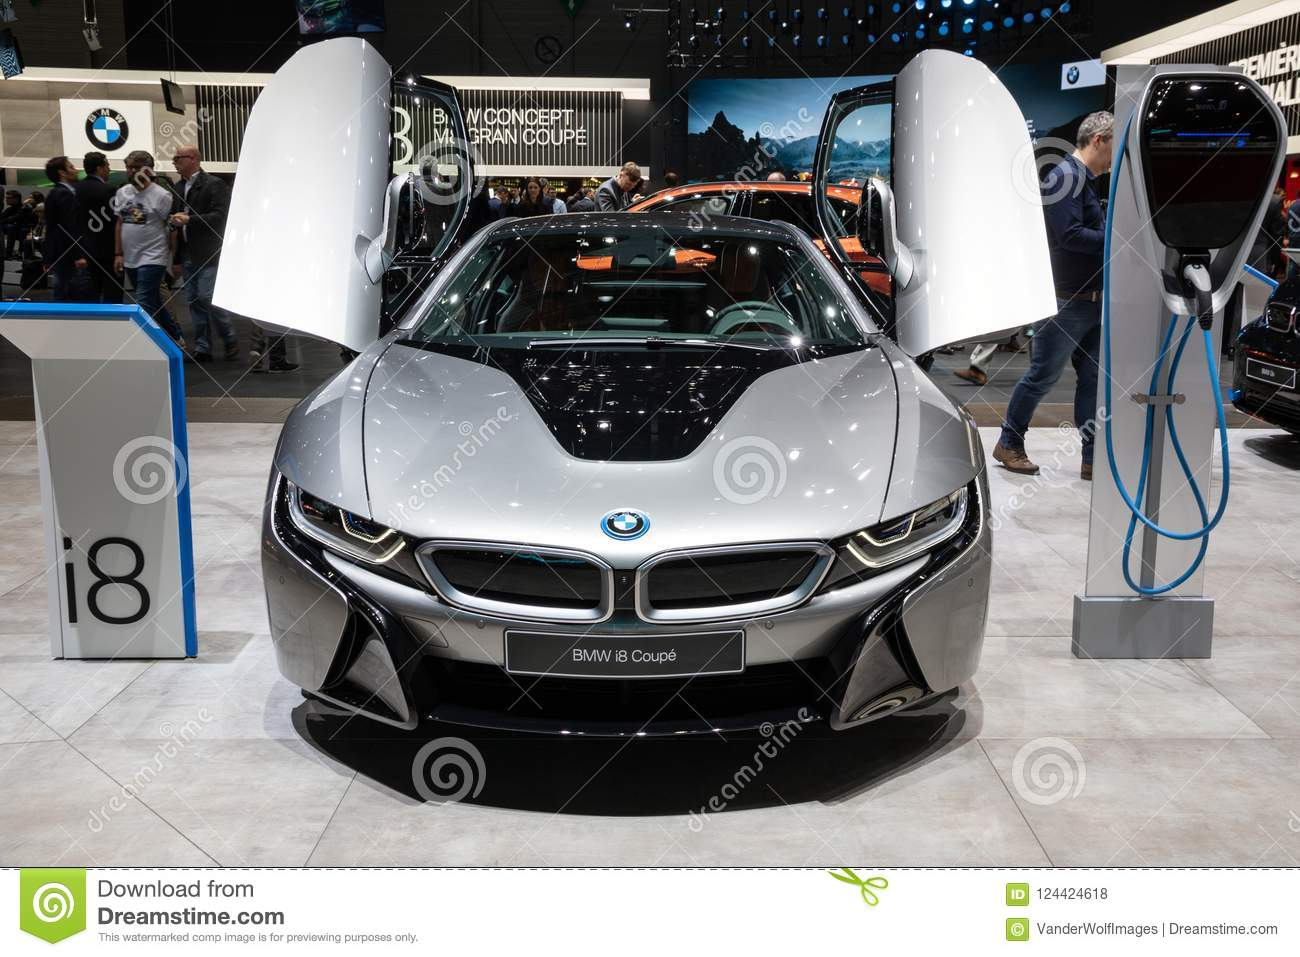 Bmw I8 Coupe Electric Sports Car Editorial Stock Photo Image Of